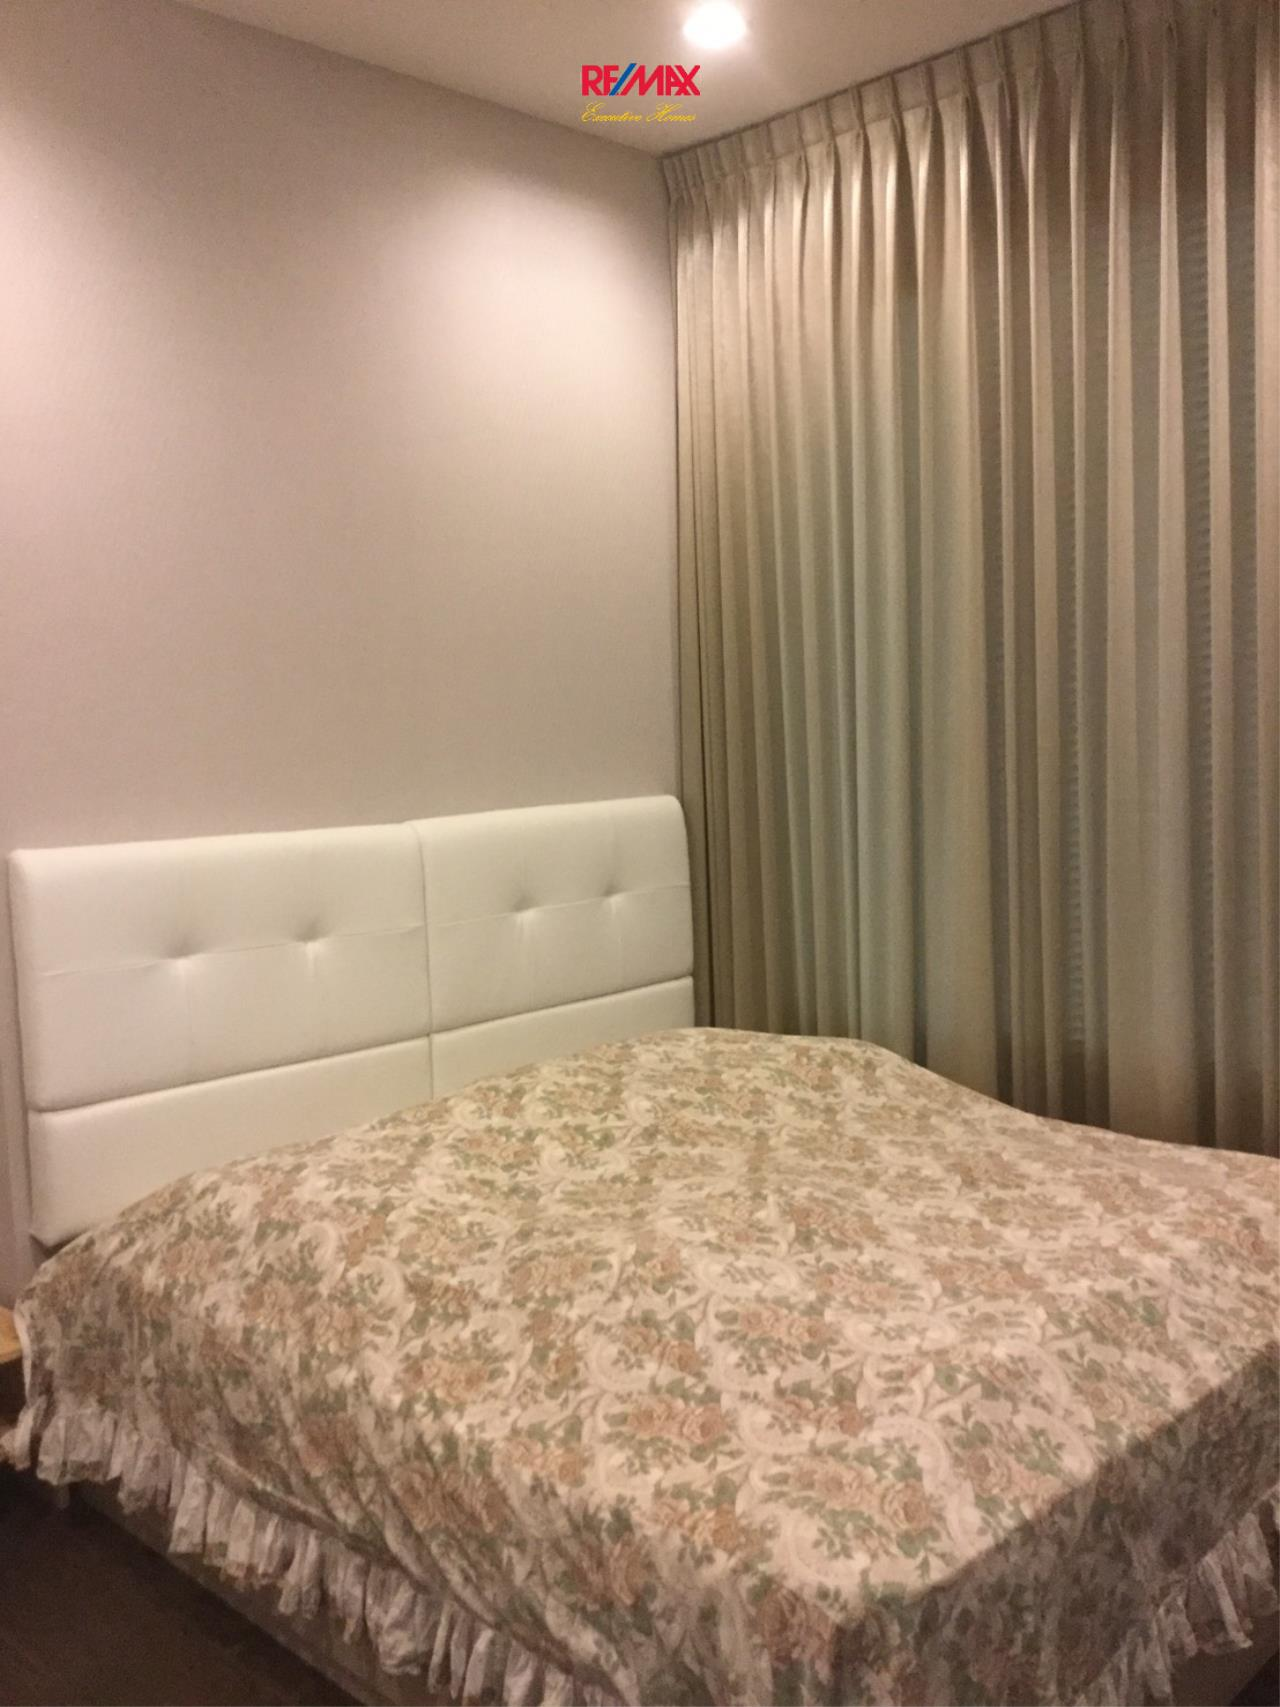 RE/MAX Executive Homes Agency's Nice 1 Bedroom for Rent Q Asoke 3